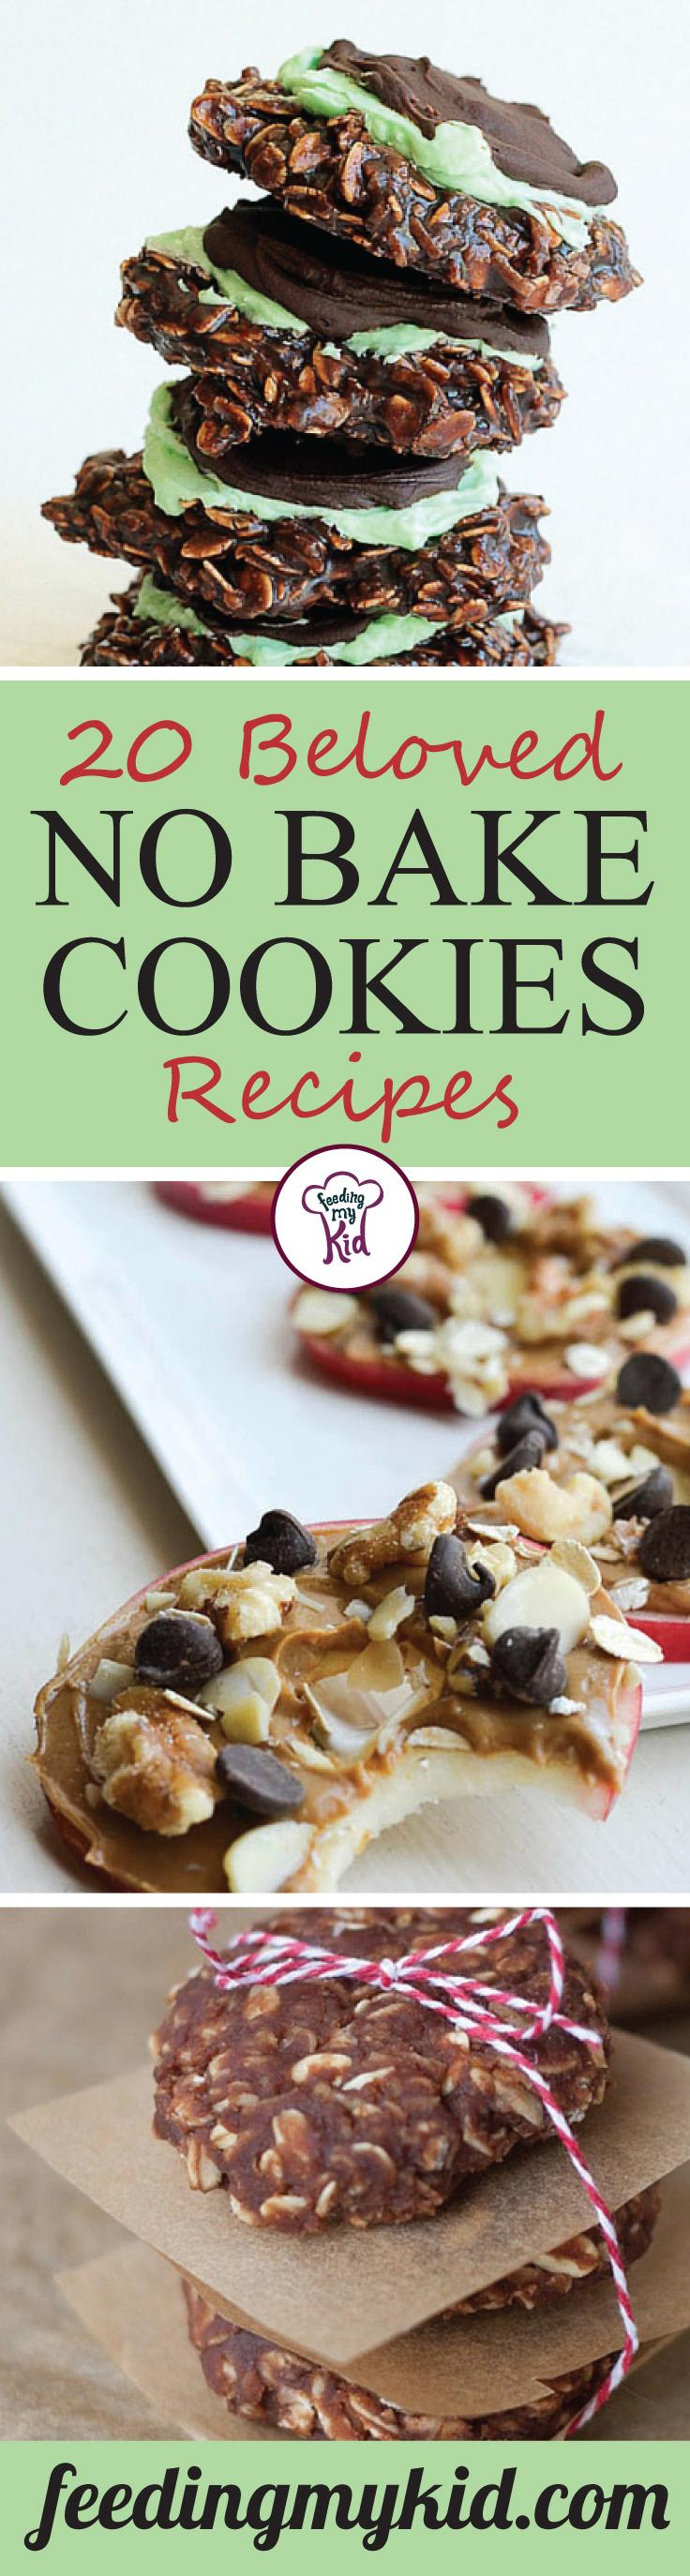 20 Beloved No Bake Cookies Recipes - This batch of no bake cookies recipes are a quick and easy way to soothe that sweet tooth. With Mexican Chocolate, Minty Fudge, and Strawberry Milk no bake cookies, you'll be sure to put a smile on your picky eater's face as well as your own!